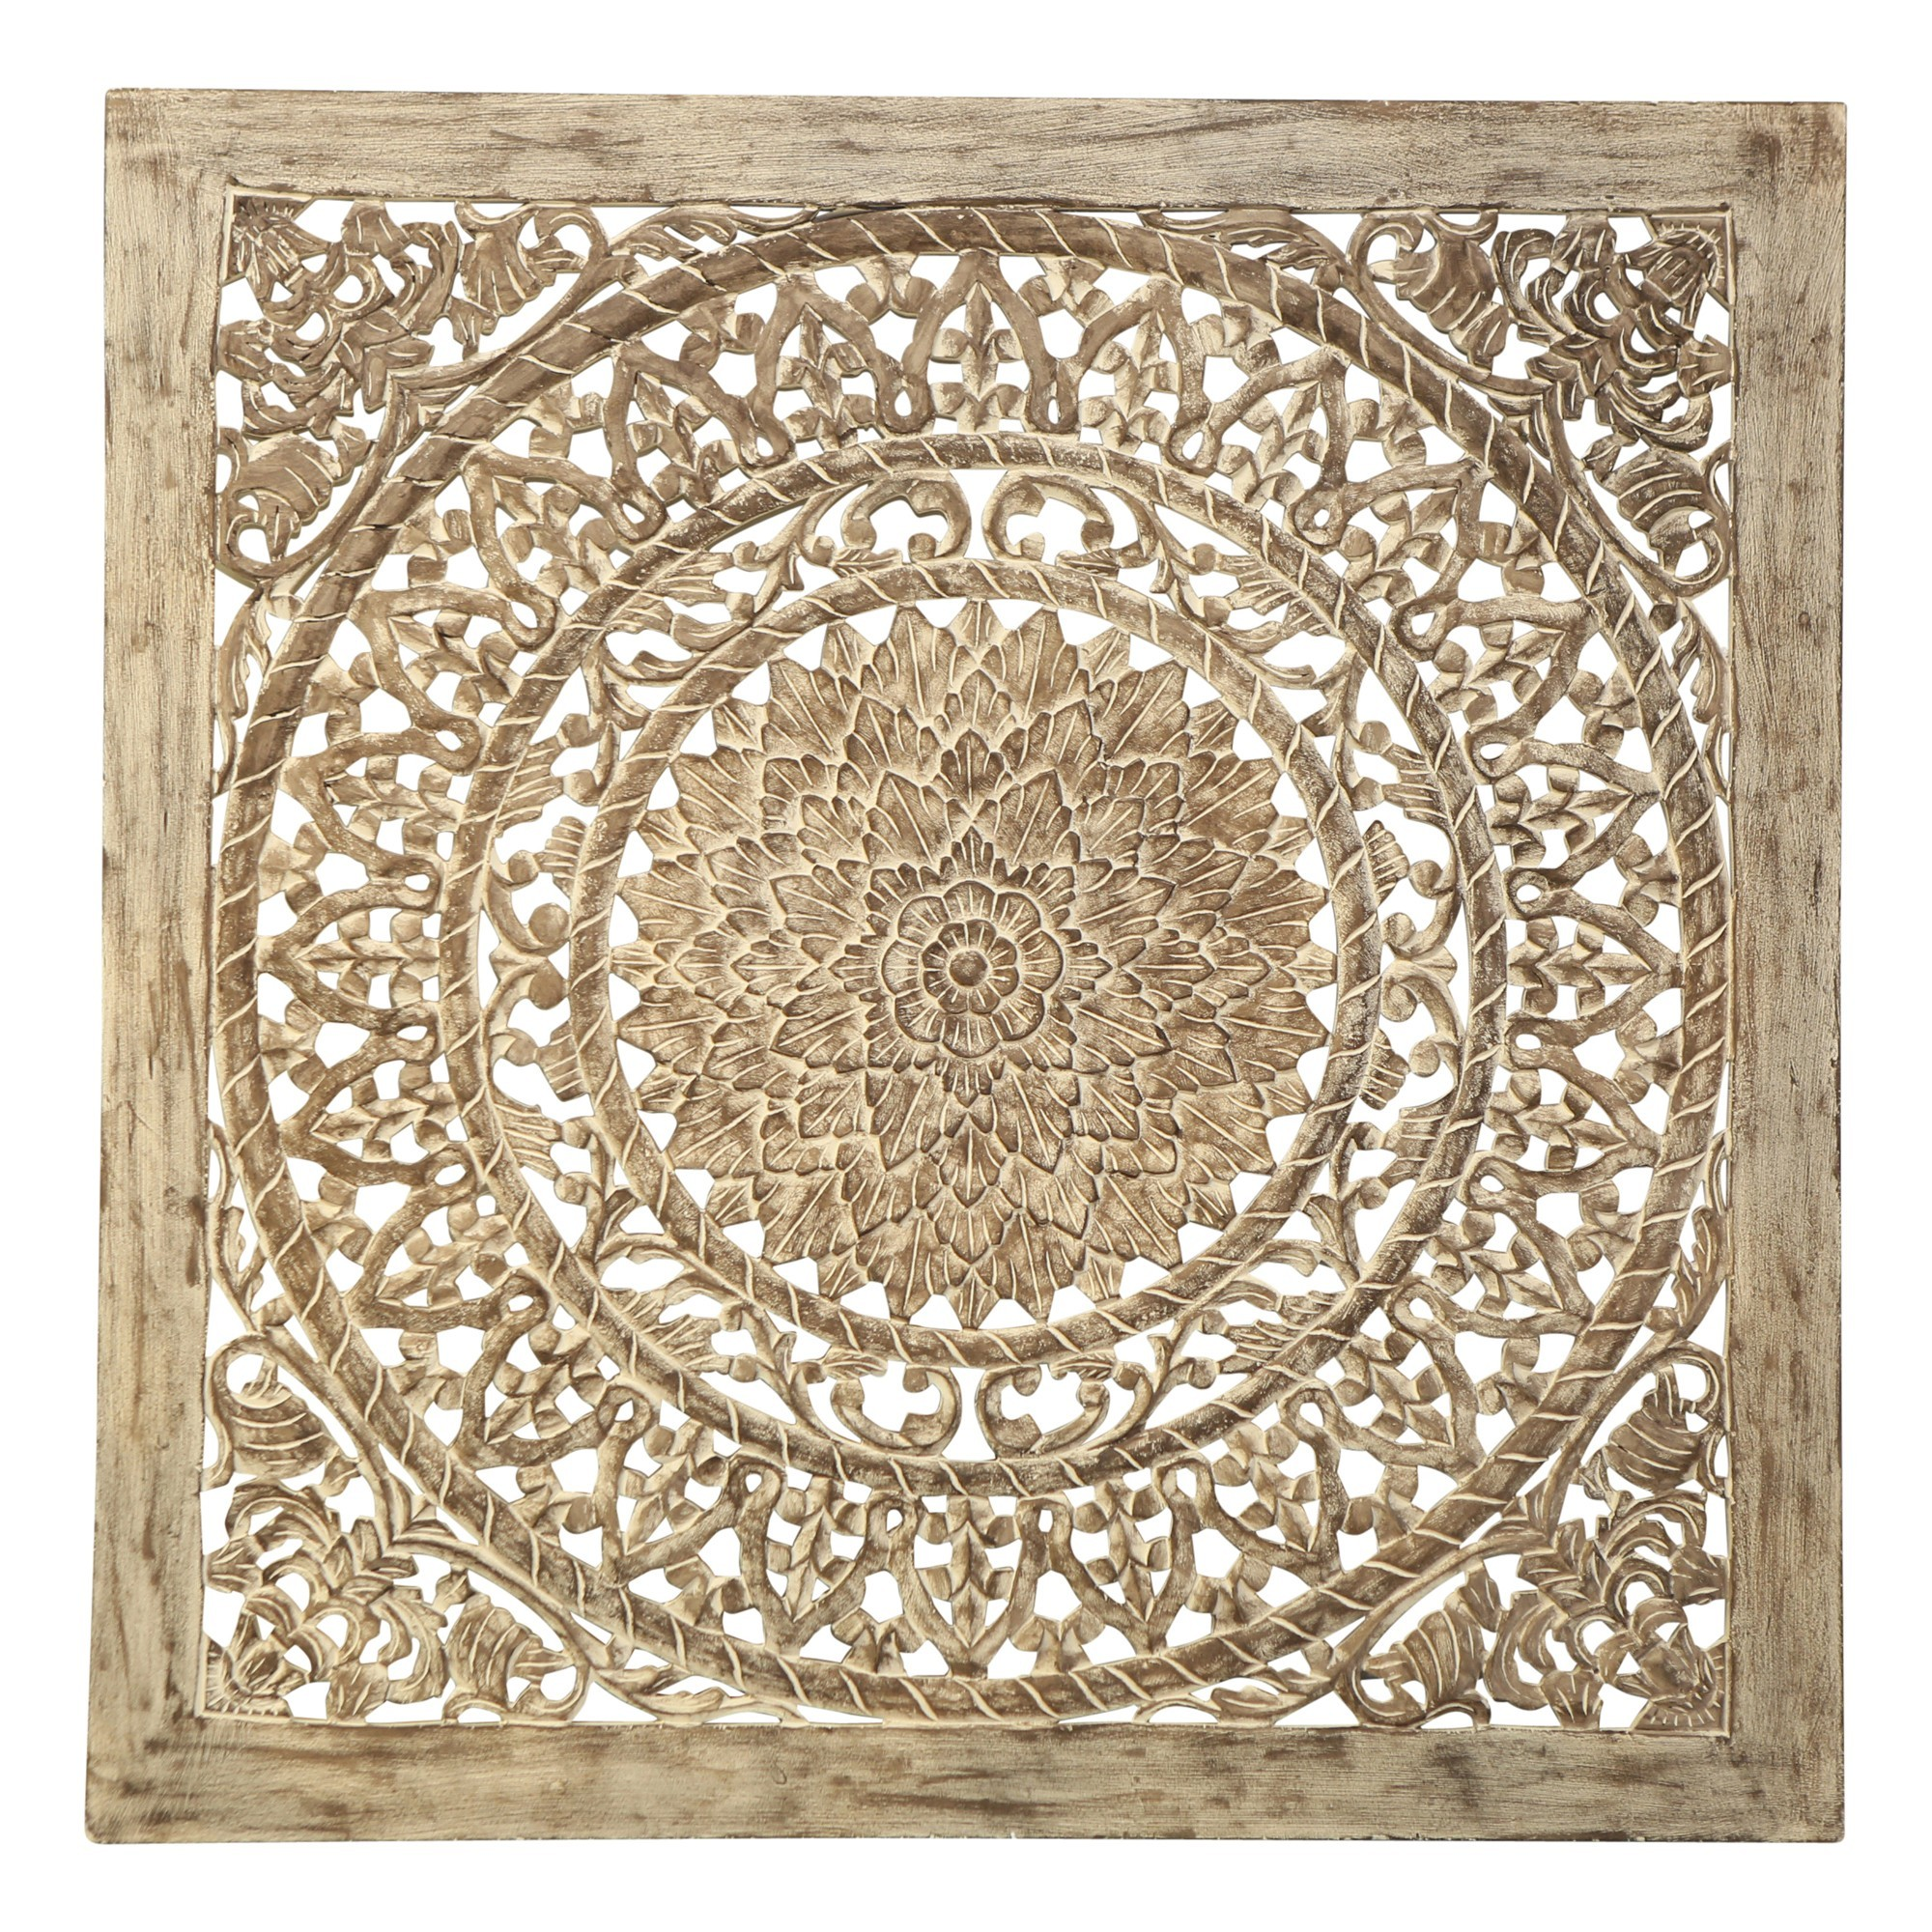 Glover Wooden Wall Decor, 120cm